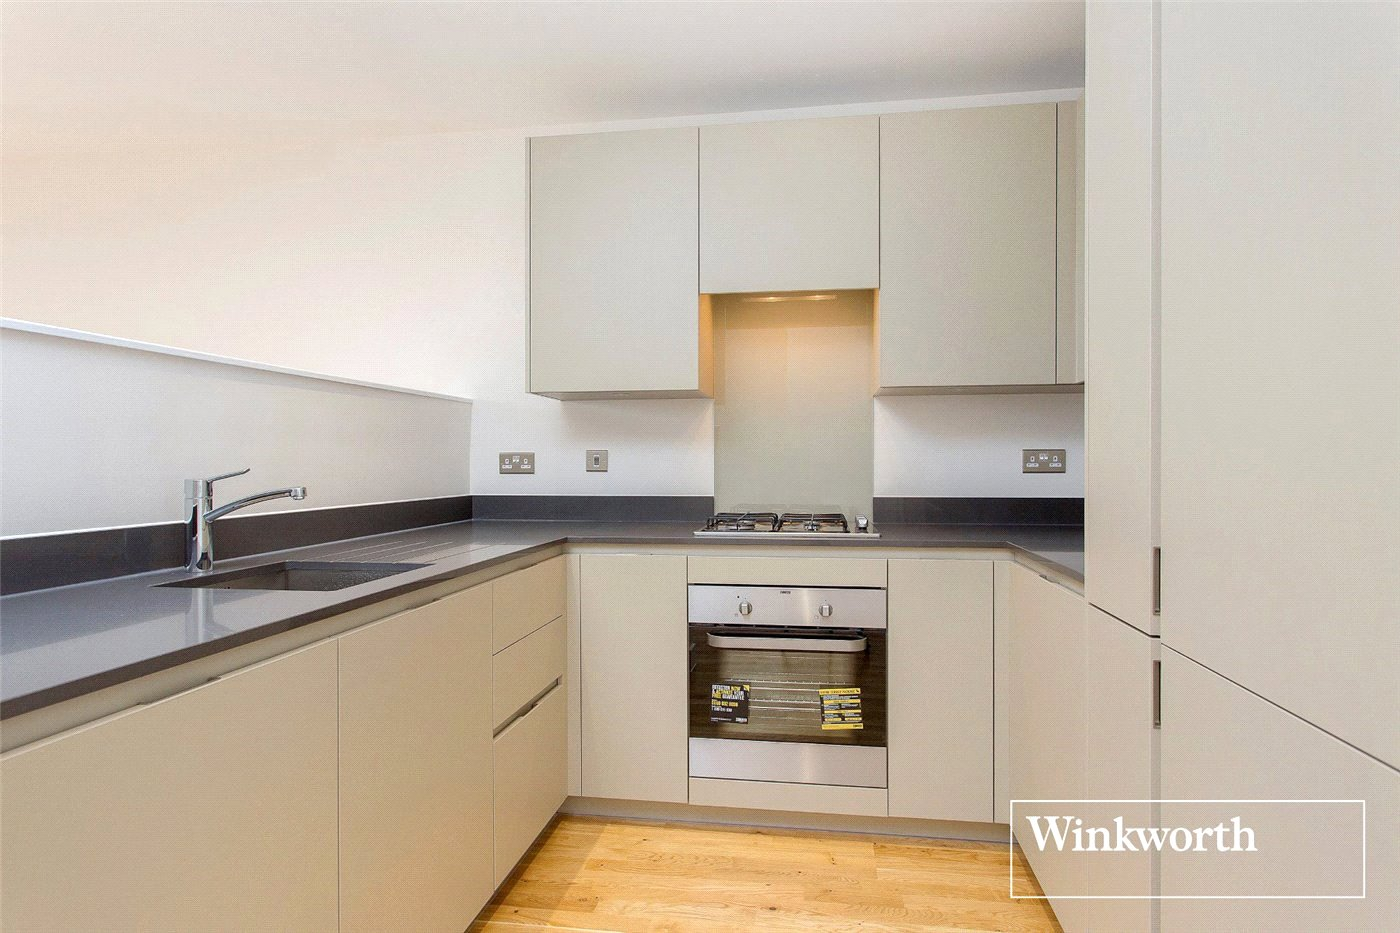 2 Bedroom Flat To Rent Bucaneer Court Percival Avenue London Nw Edgware Nw9 5ng